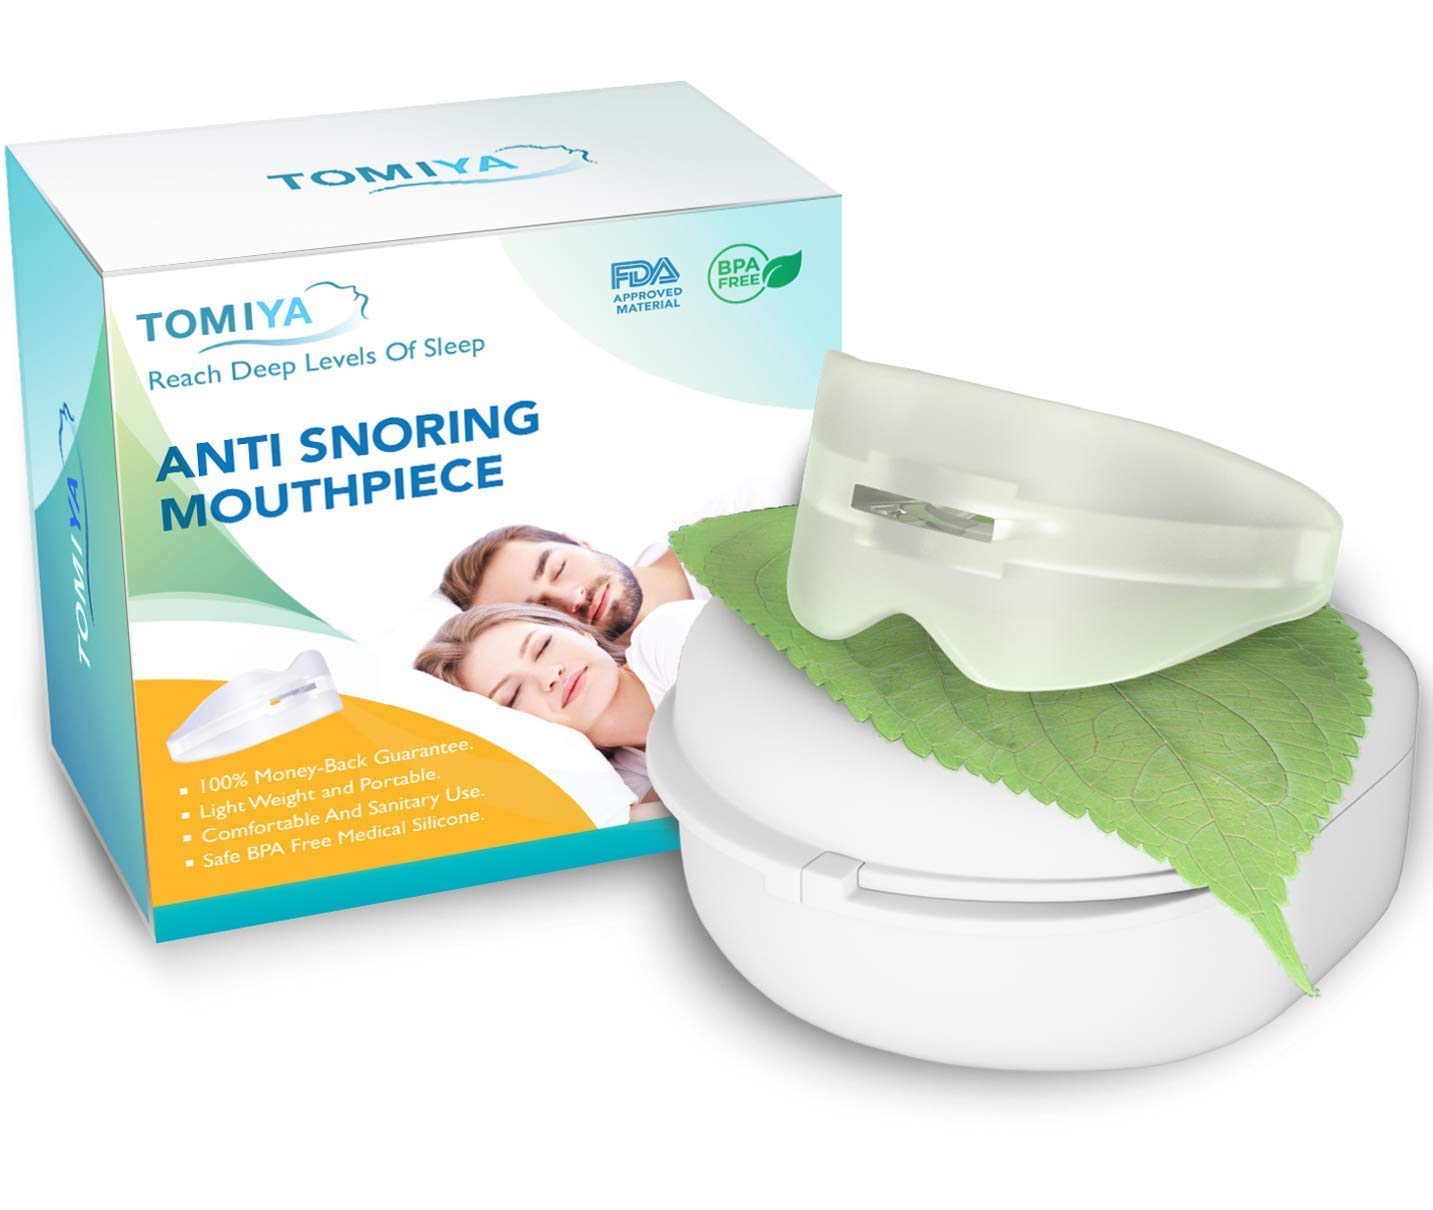 Snore Stopper Mouthpiece - Snoring Solution, Sleep Aid Night Mouth Guard Bruxism Mouthpiece, Best